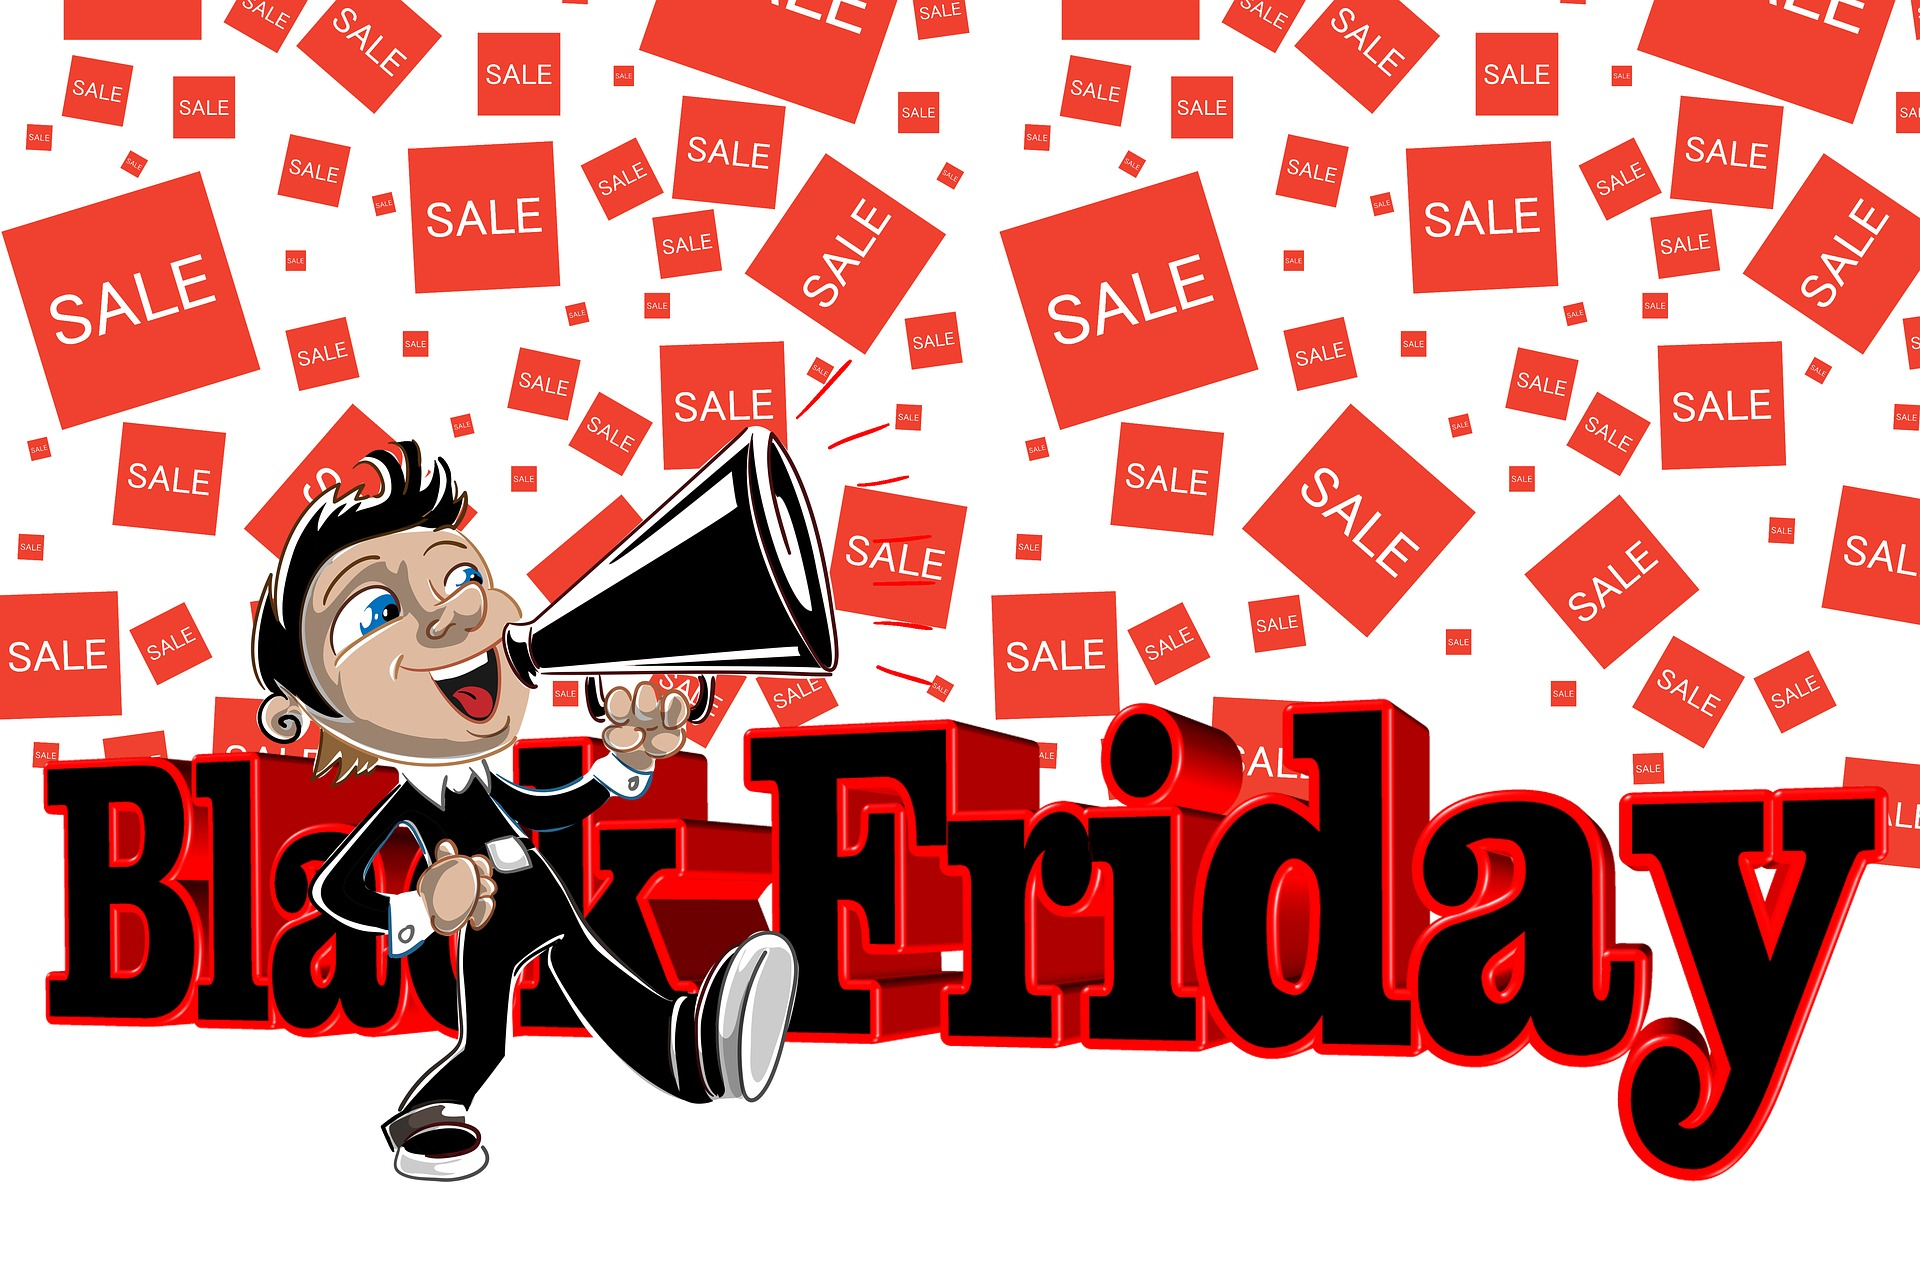 Black Friday: What Does the Ever-Popular Consumer Holiday Mean for Retailers in Terms of Risks and Opportunities?